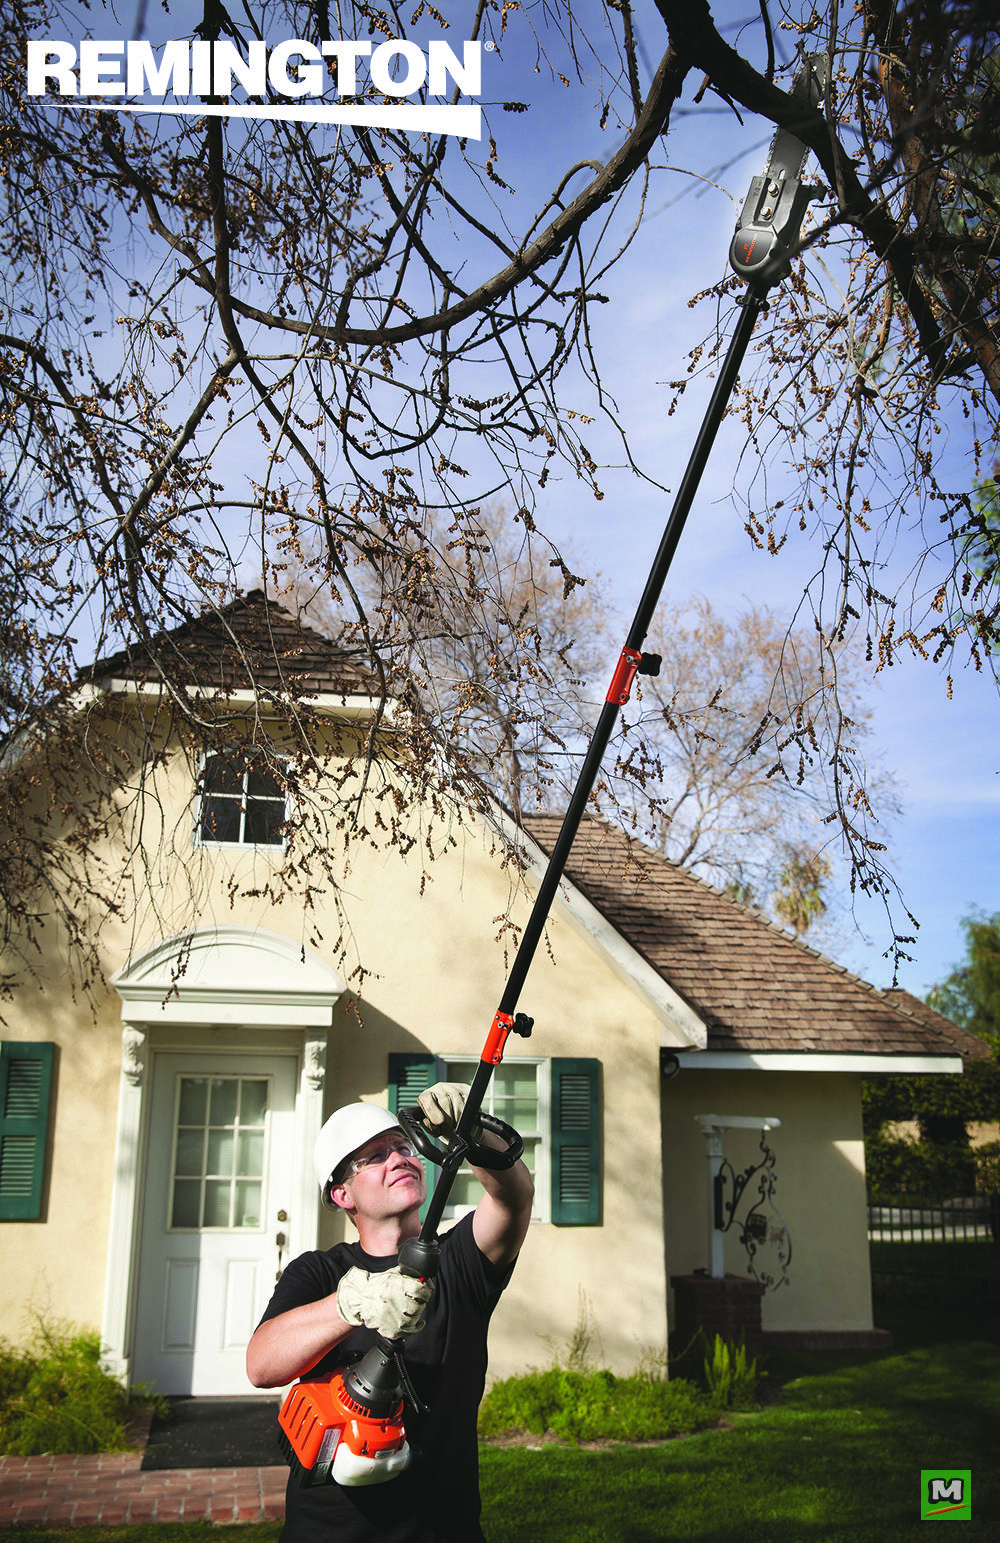 The Maverick Gas Powered Tree Trimmer Offers The Freedom To Work At Different Lengths For Different Tasks